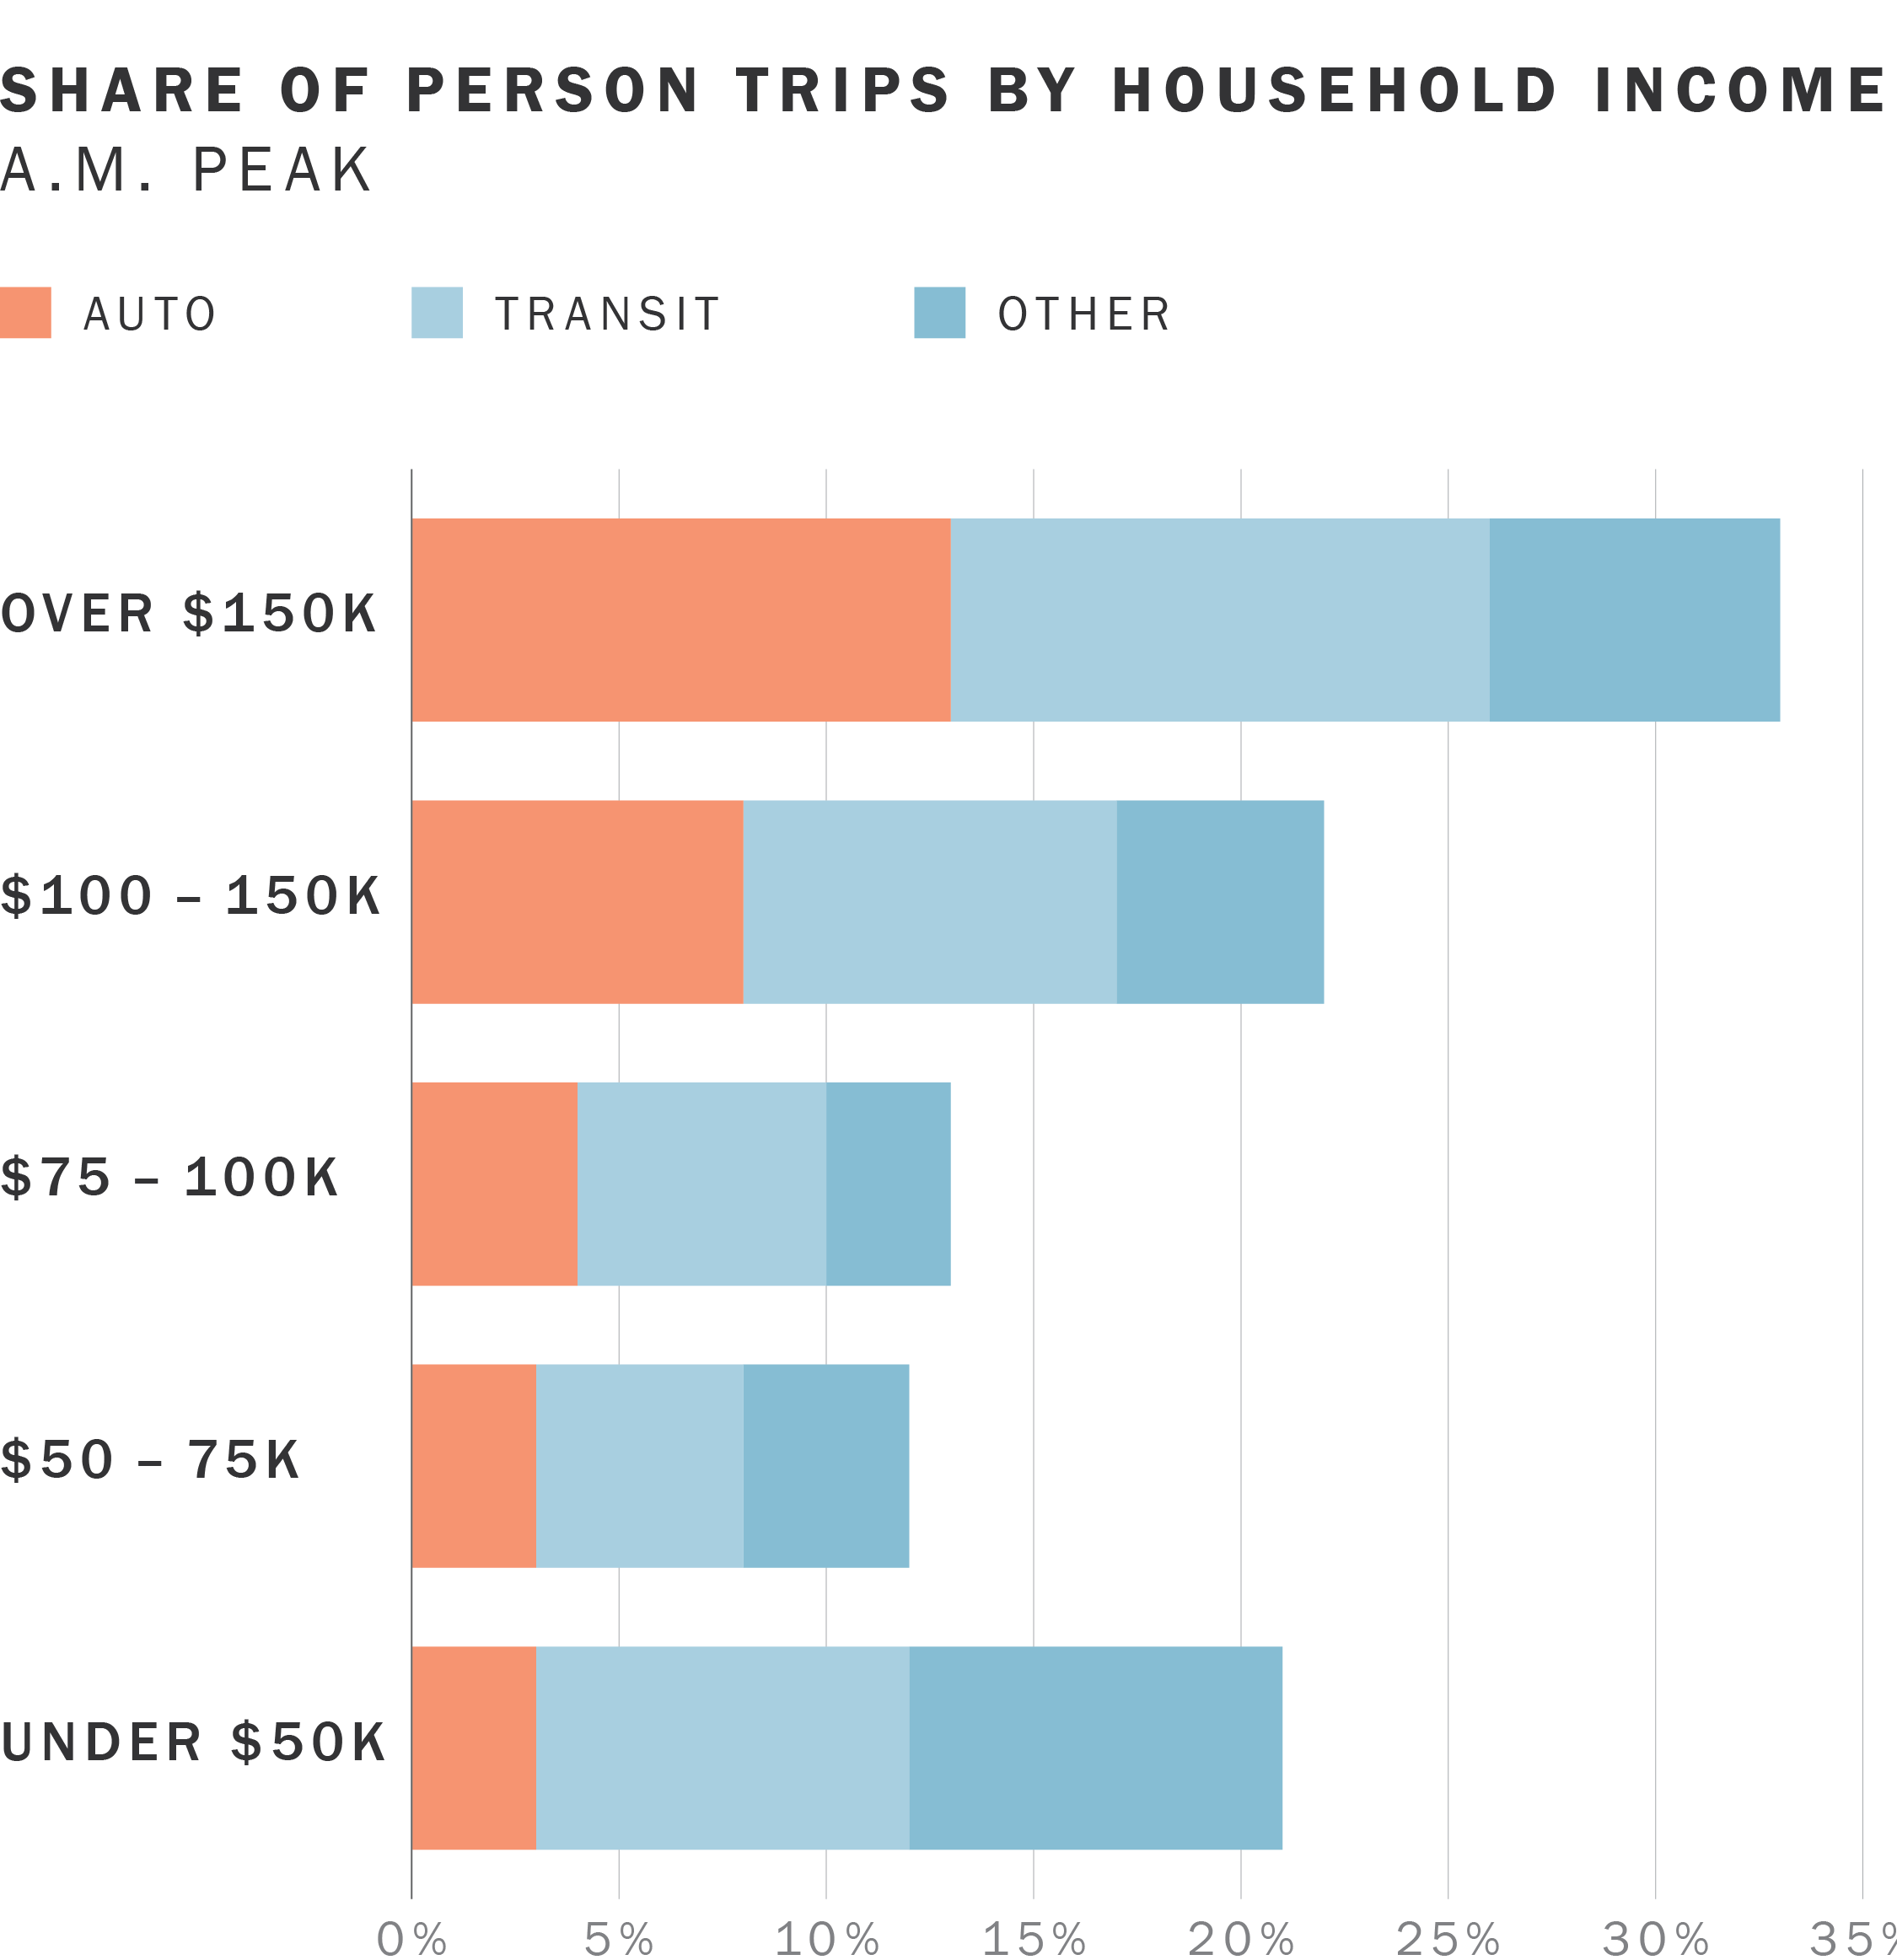 The majority of people with high incomes traveling into downtown at peak hours drive,  while most people with lower incomes take transit, walk, or bike